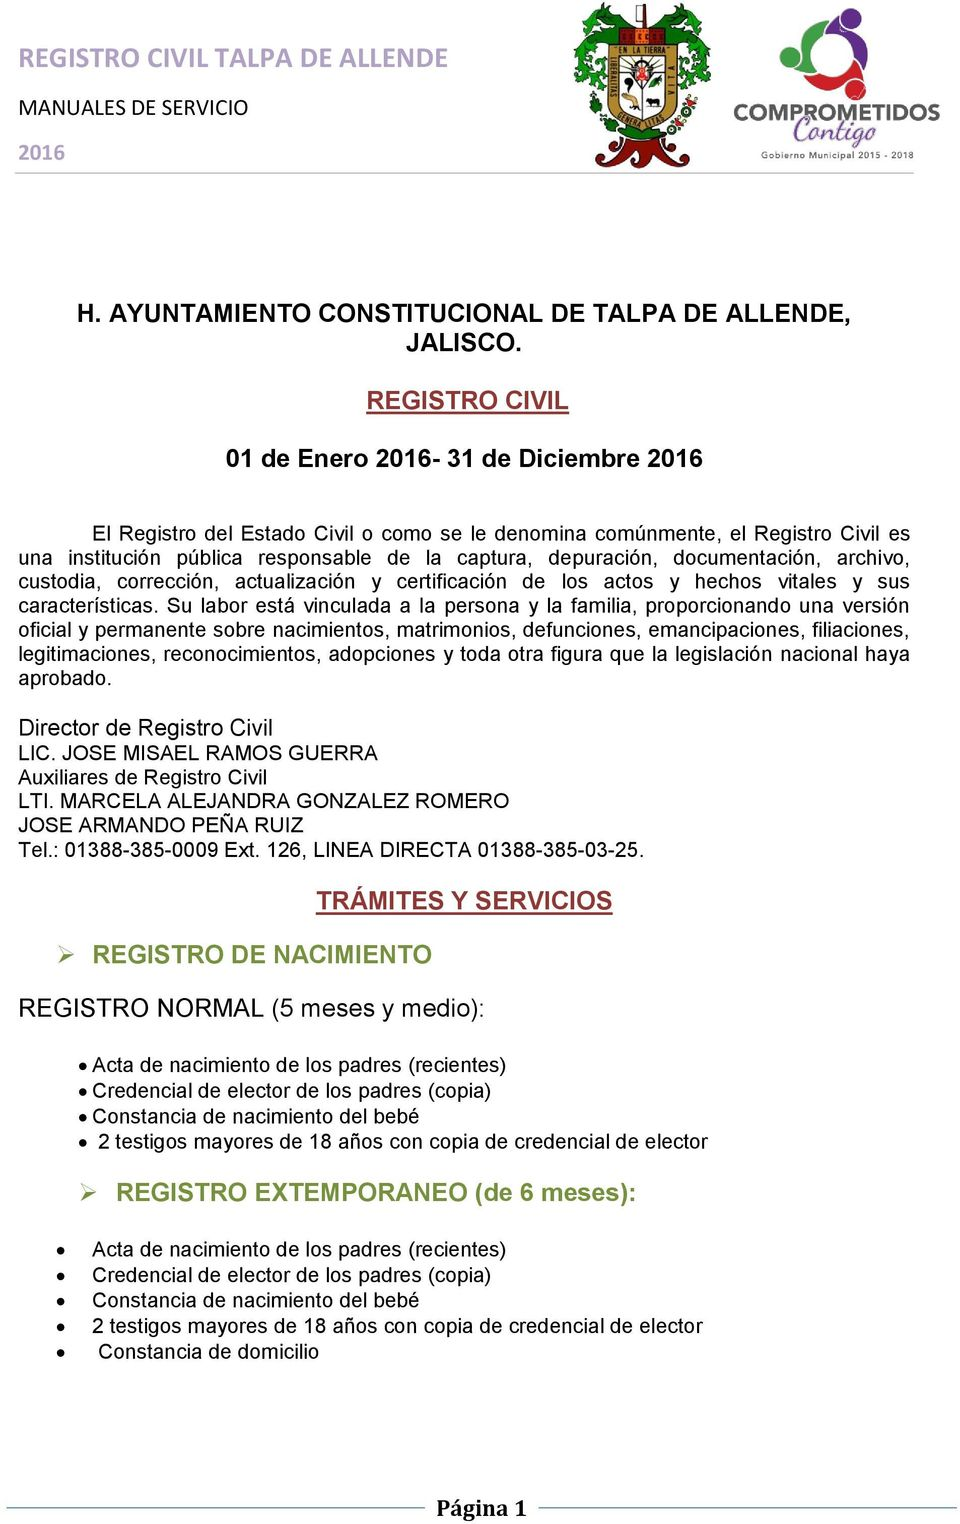 REGISTRO CIVIL TALPA DE ALLENDE - PDF